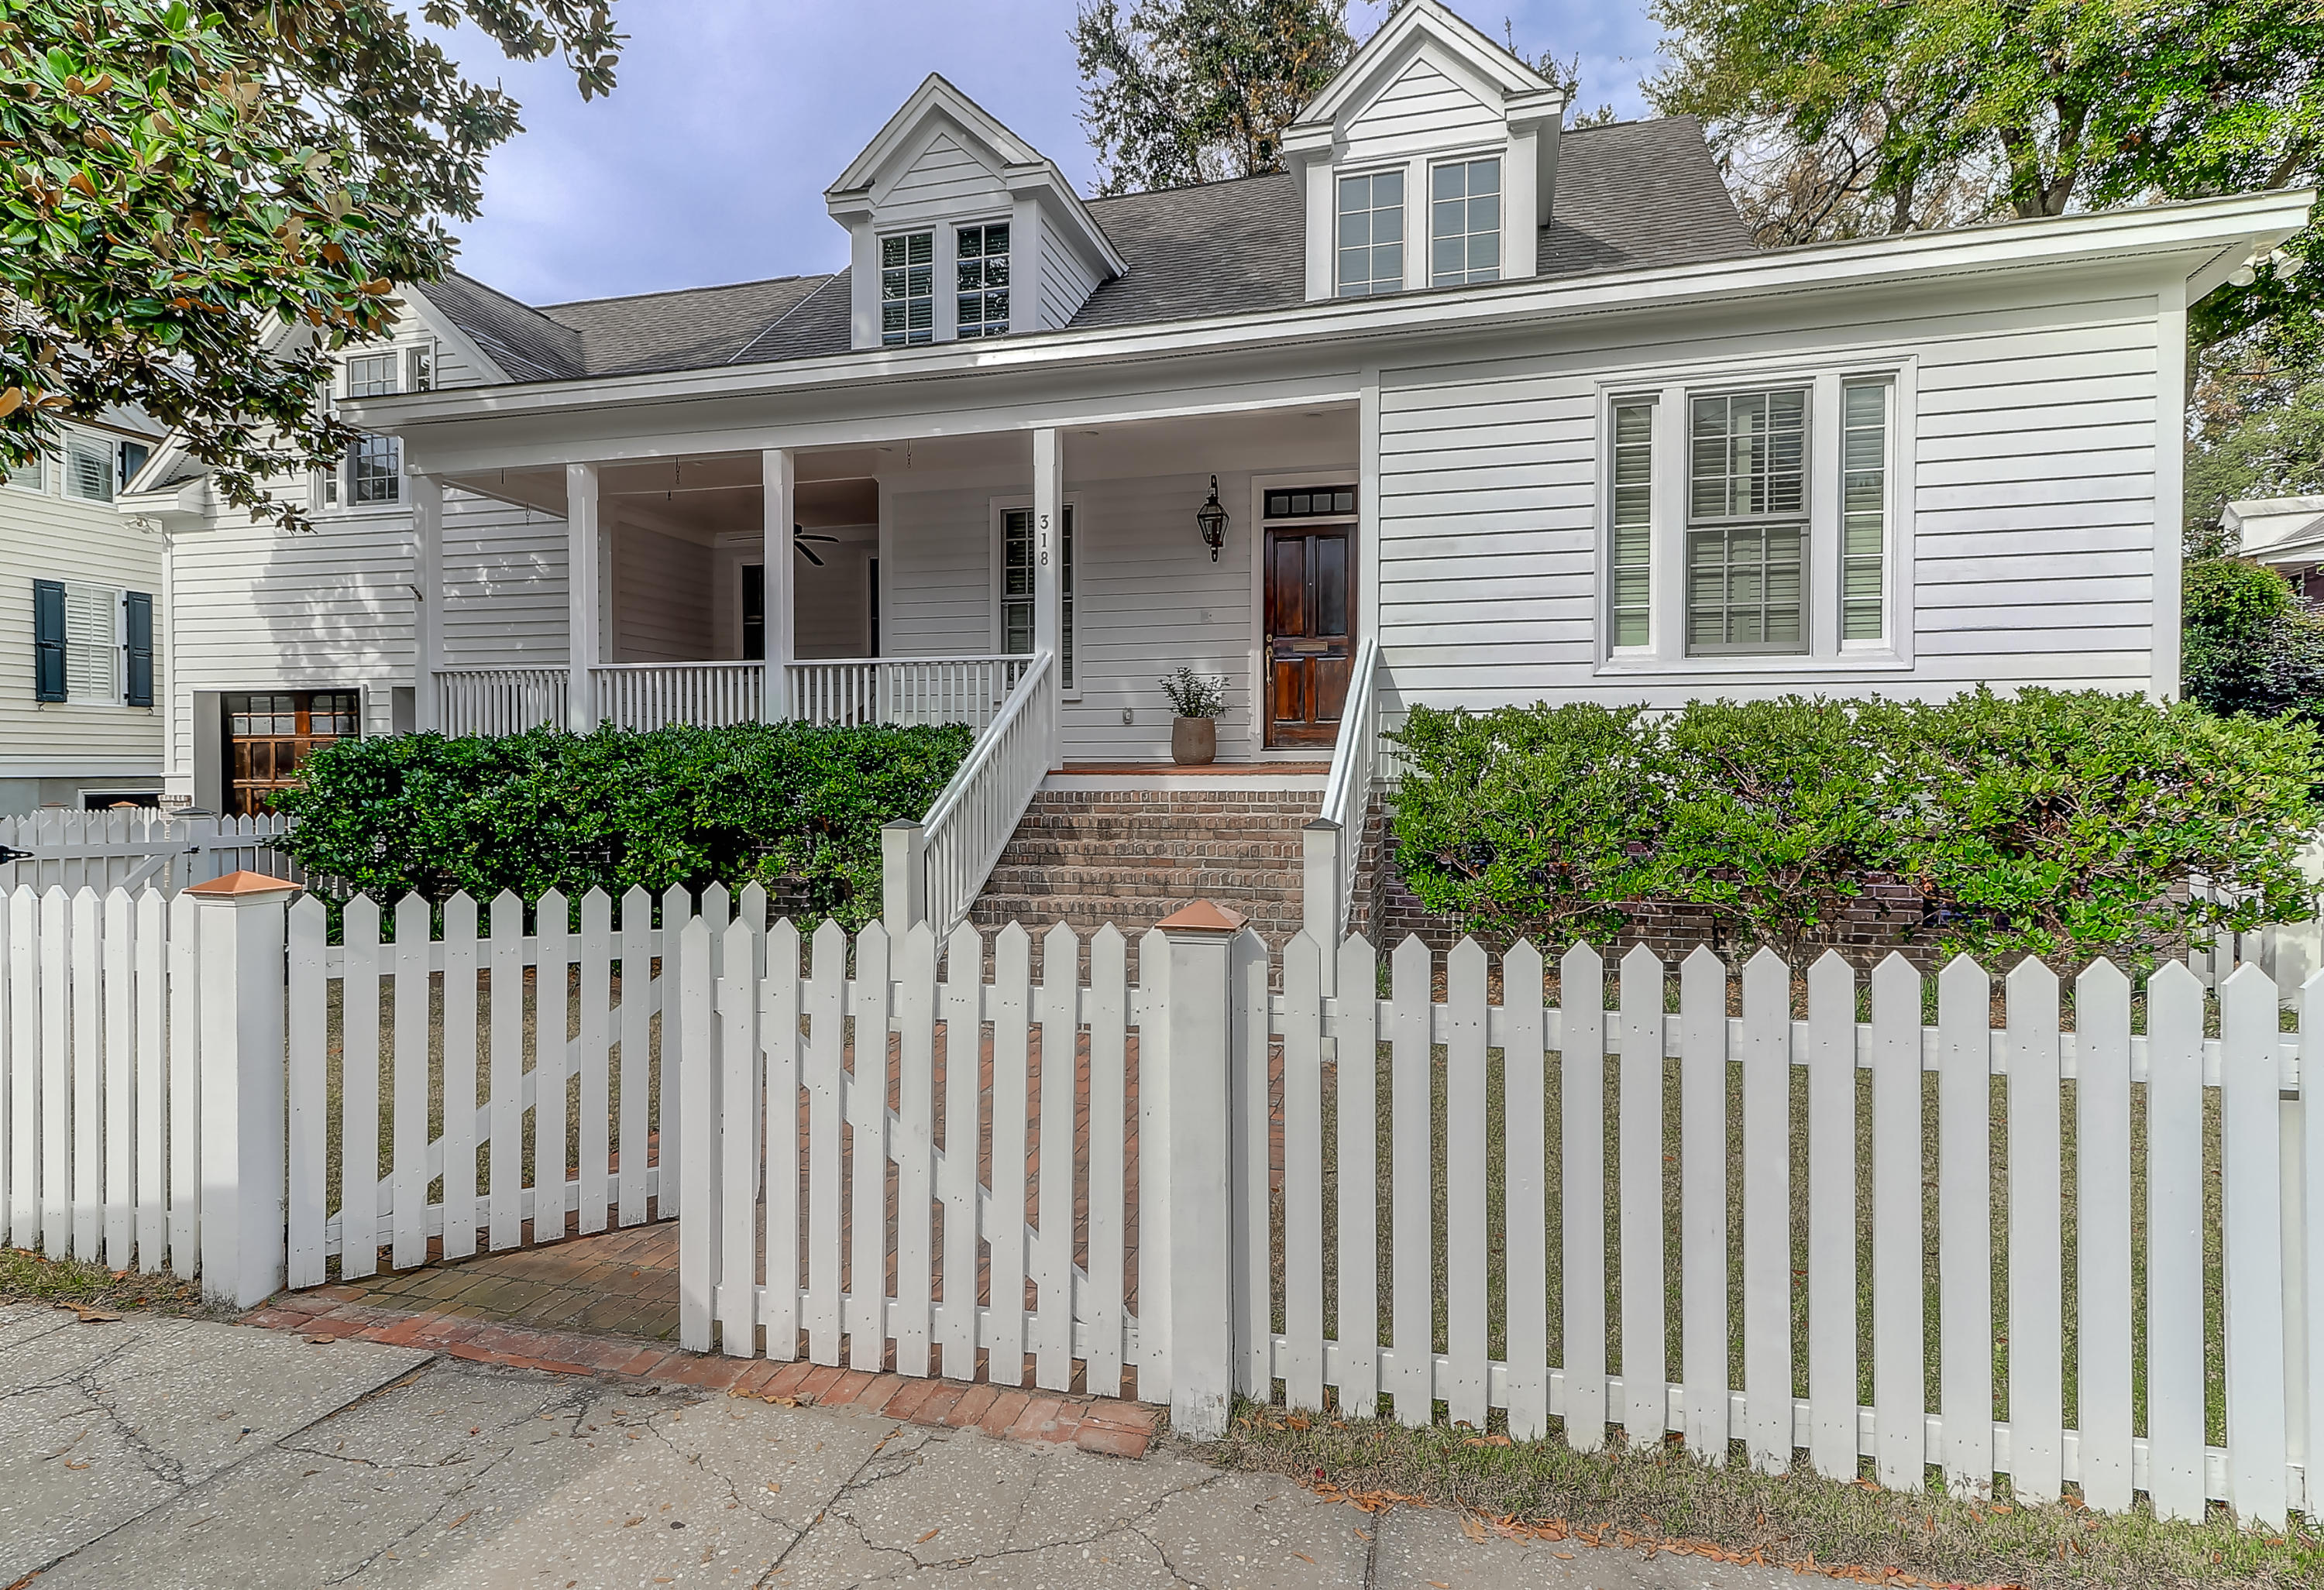 Photo of 318 Morrison St, Mt Pleasant, SC 29464